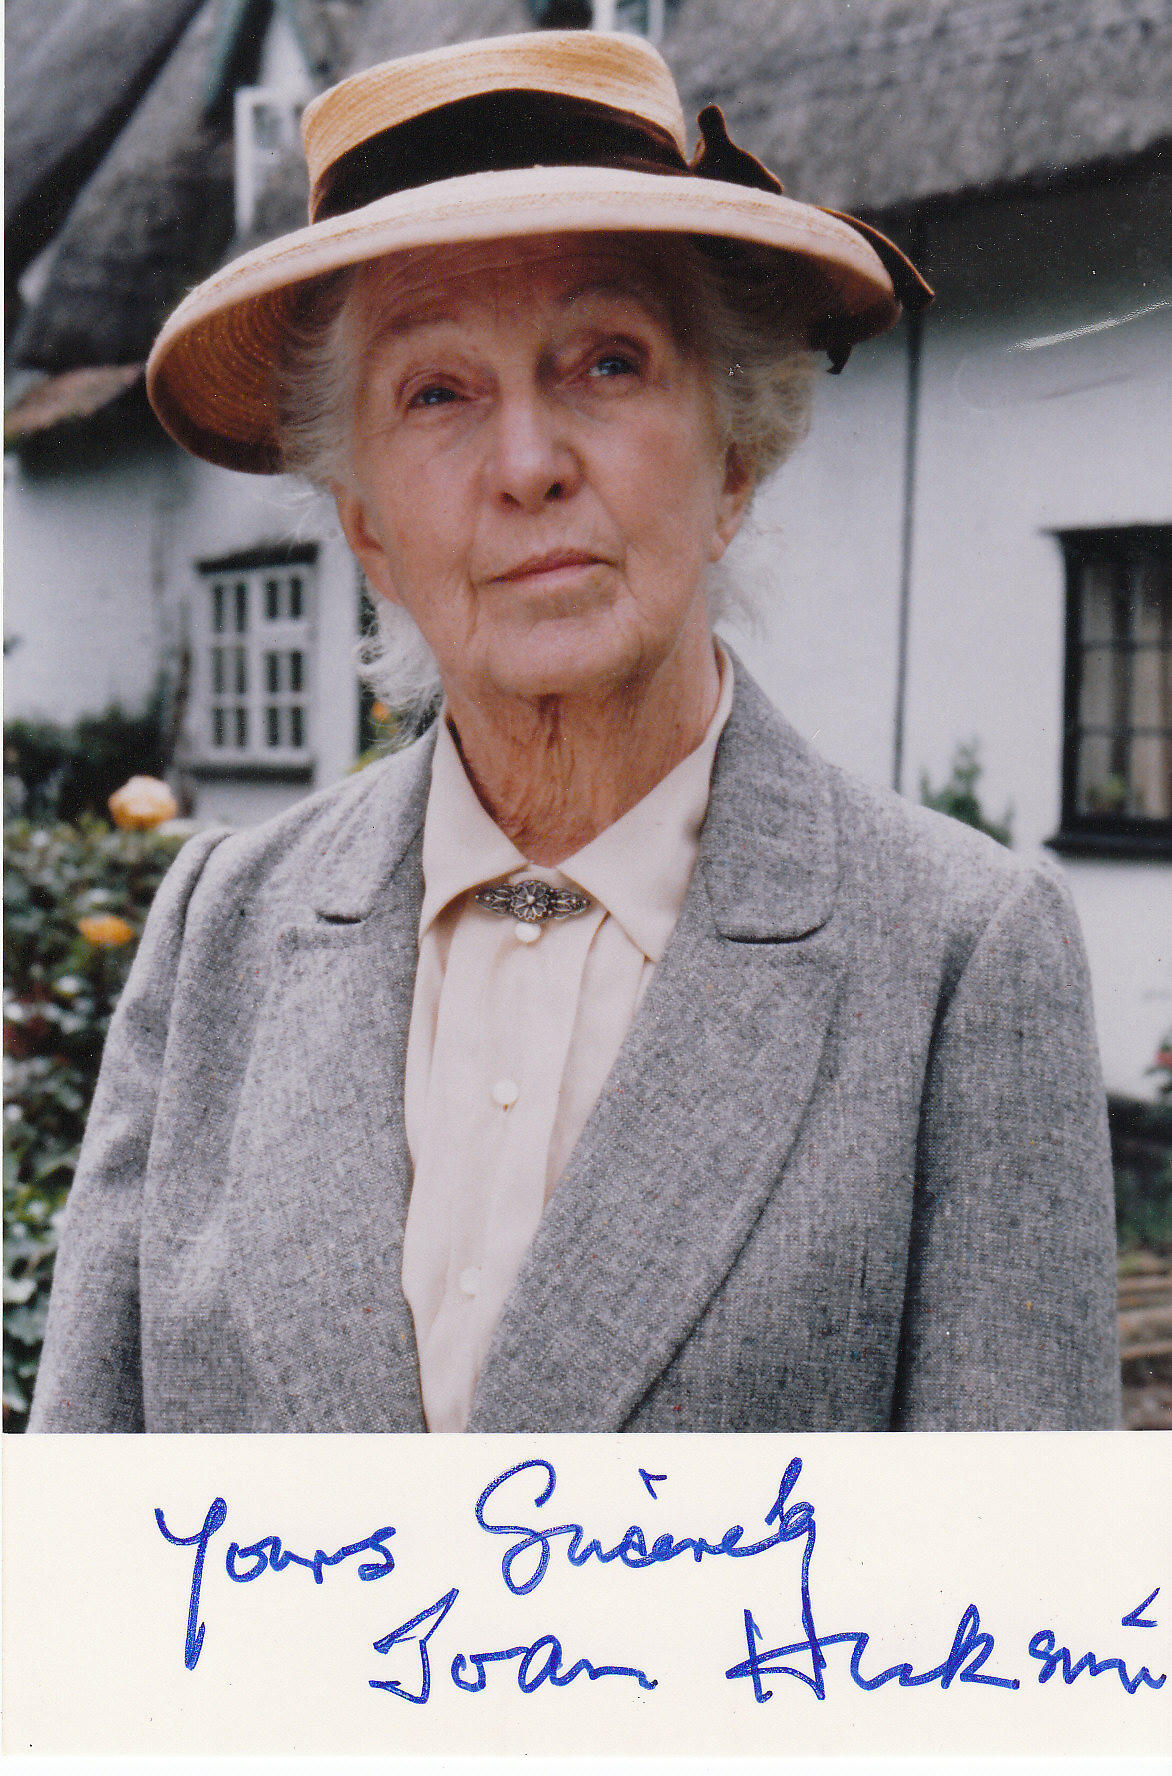 Forum on this topic: Ana Claudia Michels 2 1999-2000, joan-hickson/